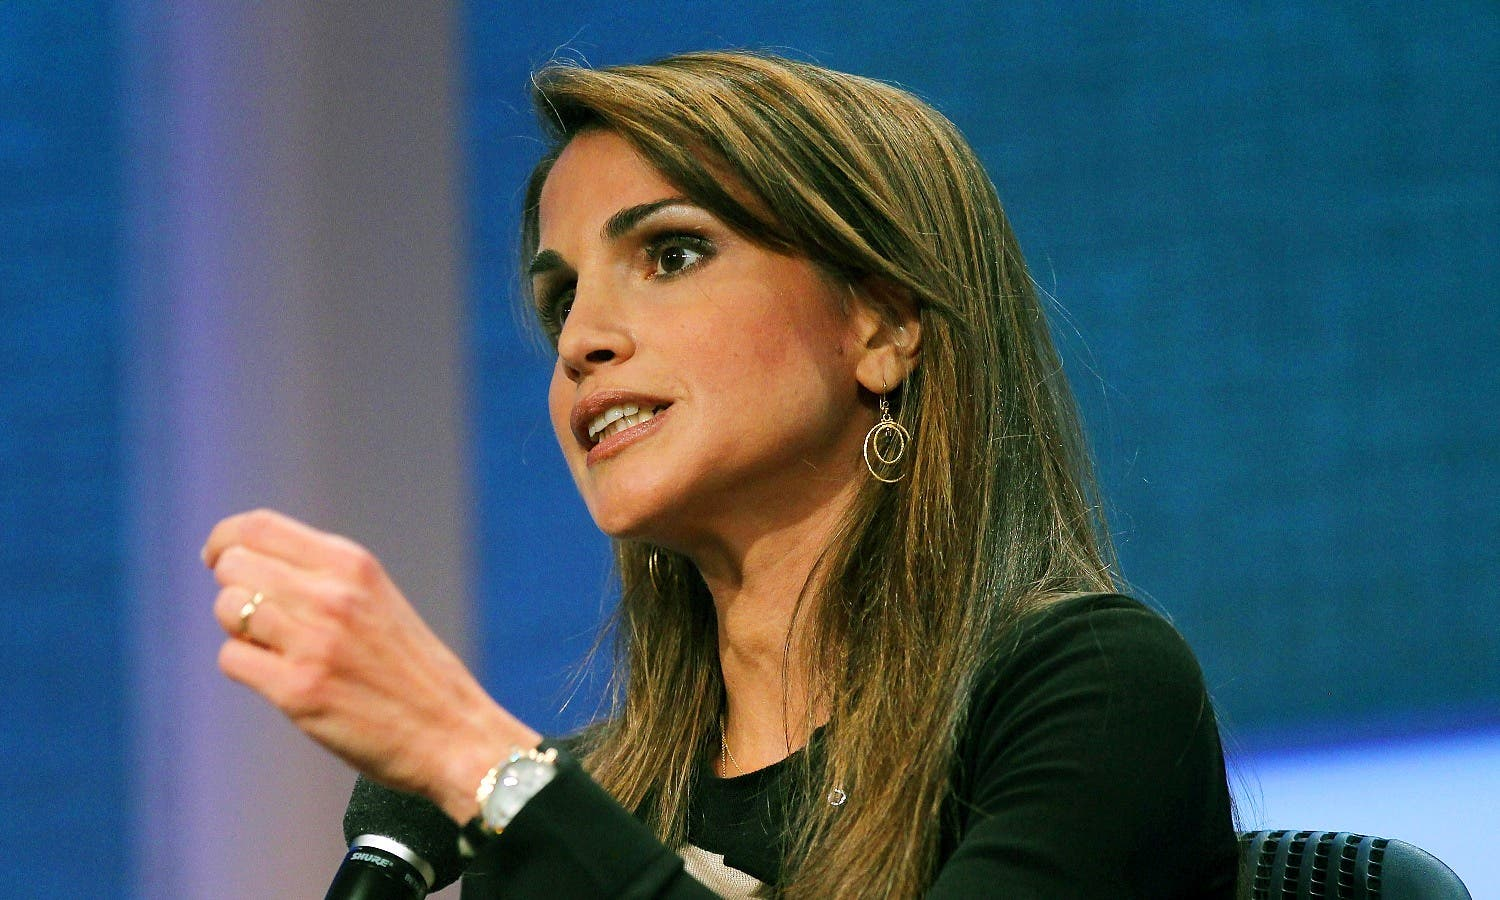 Queen Rania said the Arab world has the richest and the poorest countries in energy in spite of proximity of energy resources